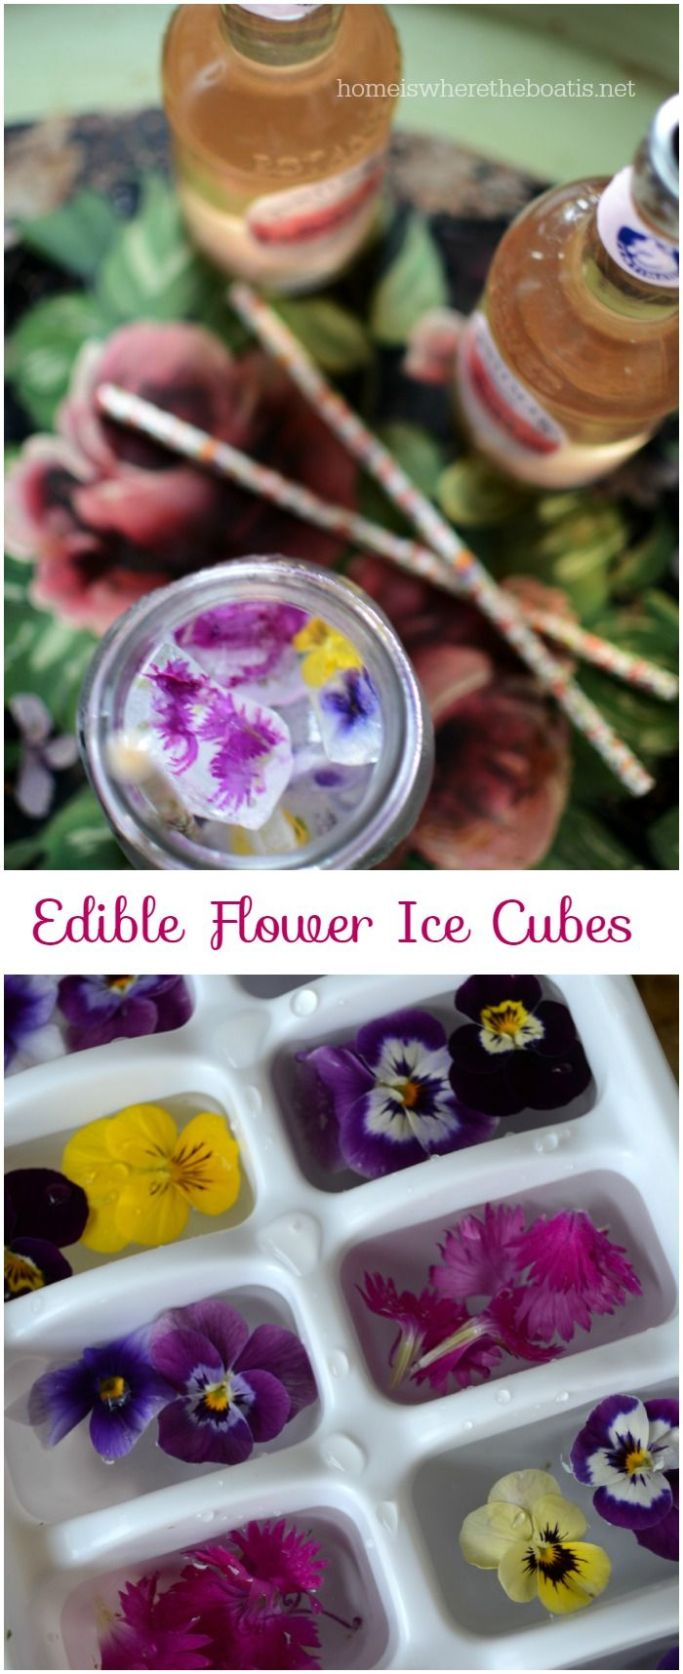 edible flower ice cubes